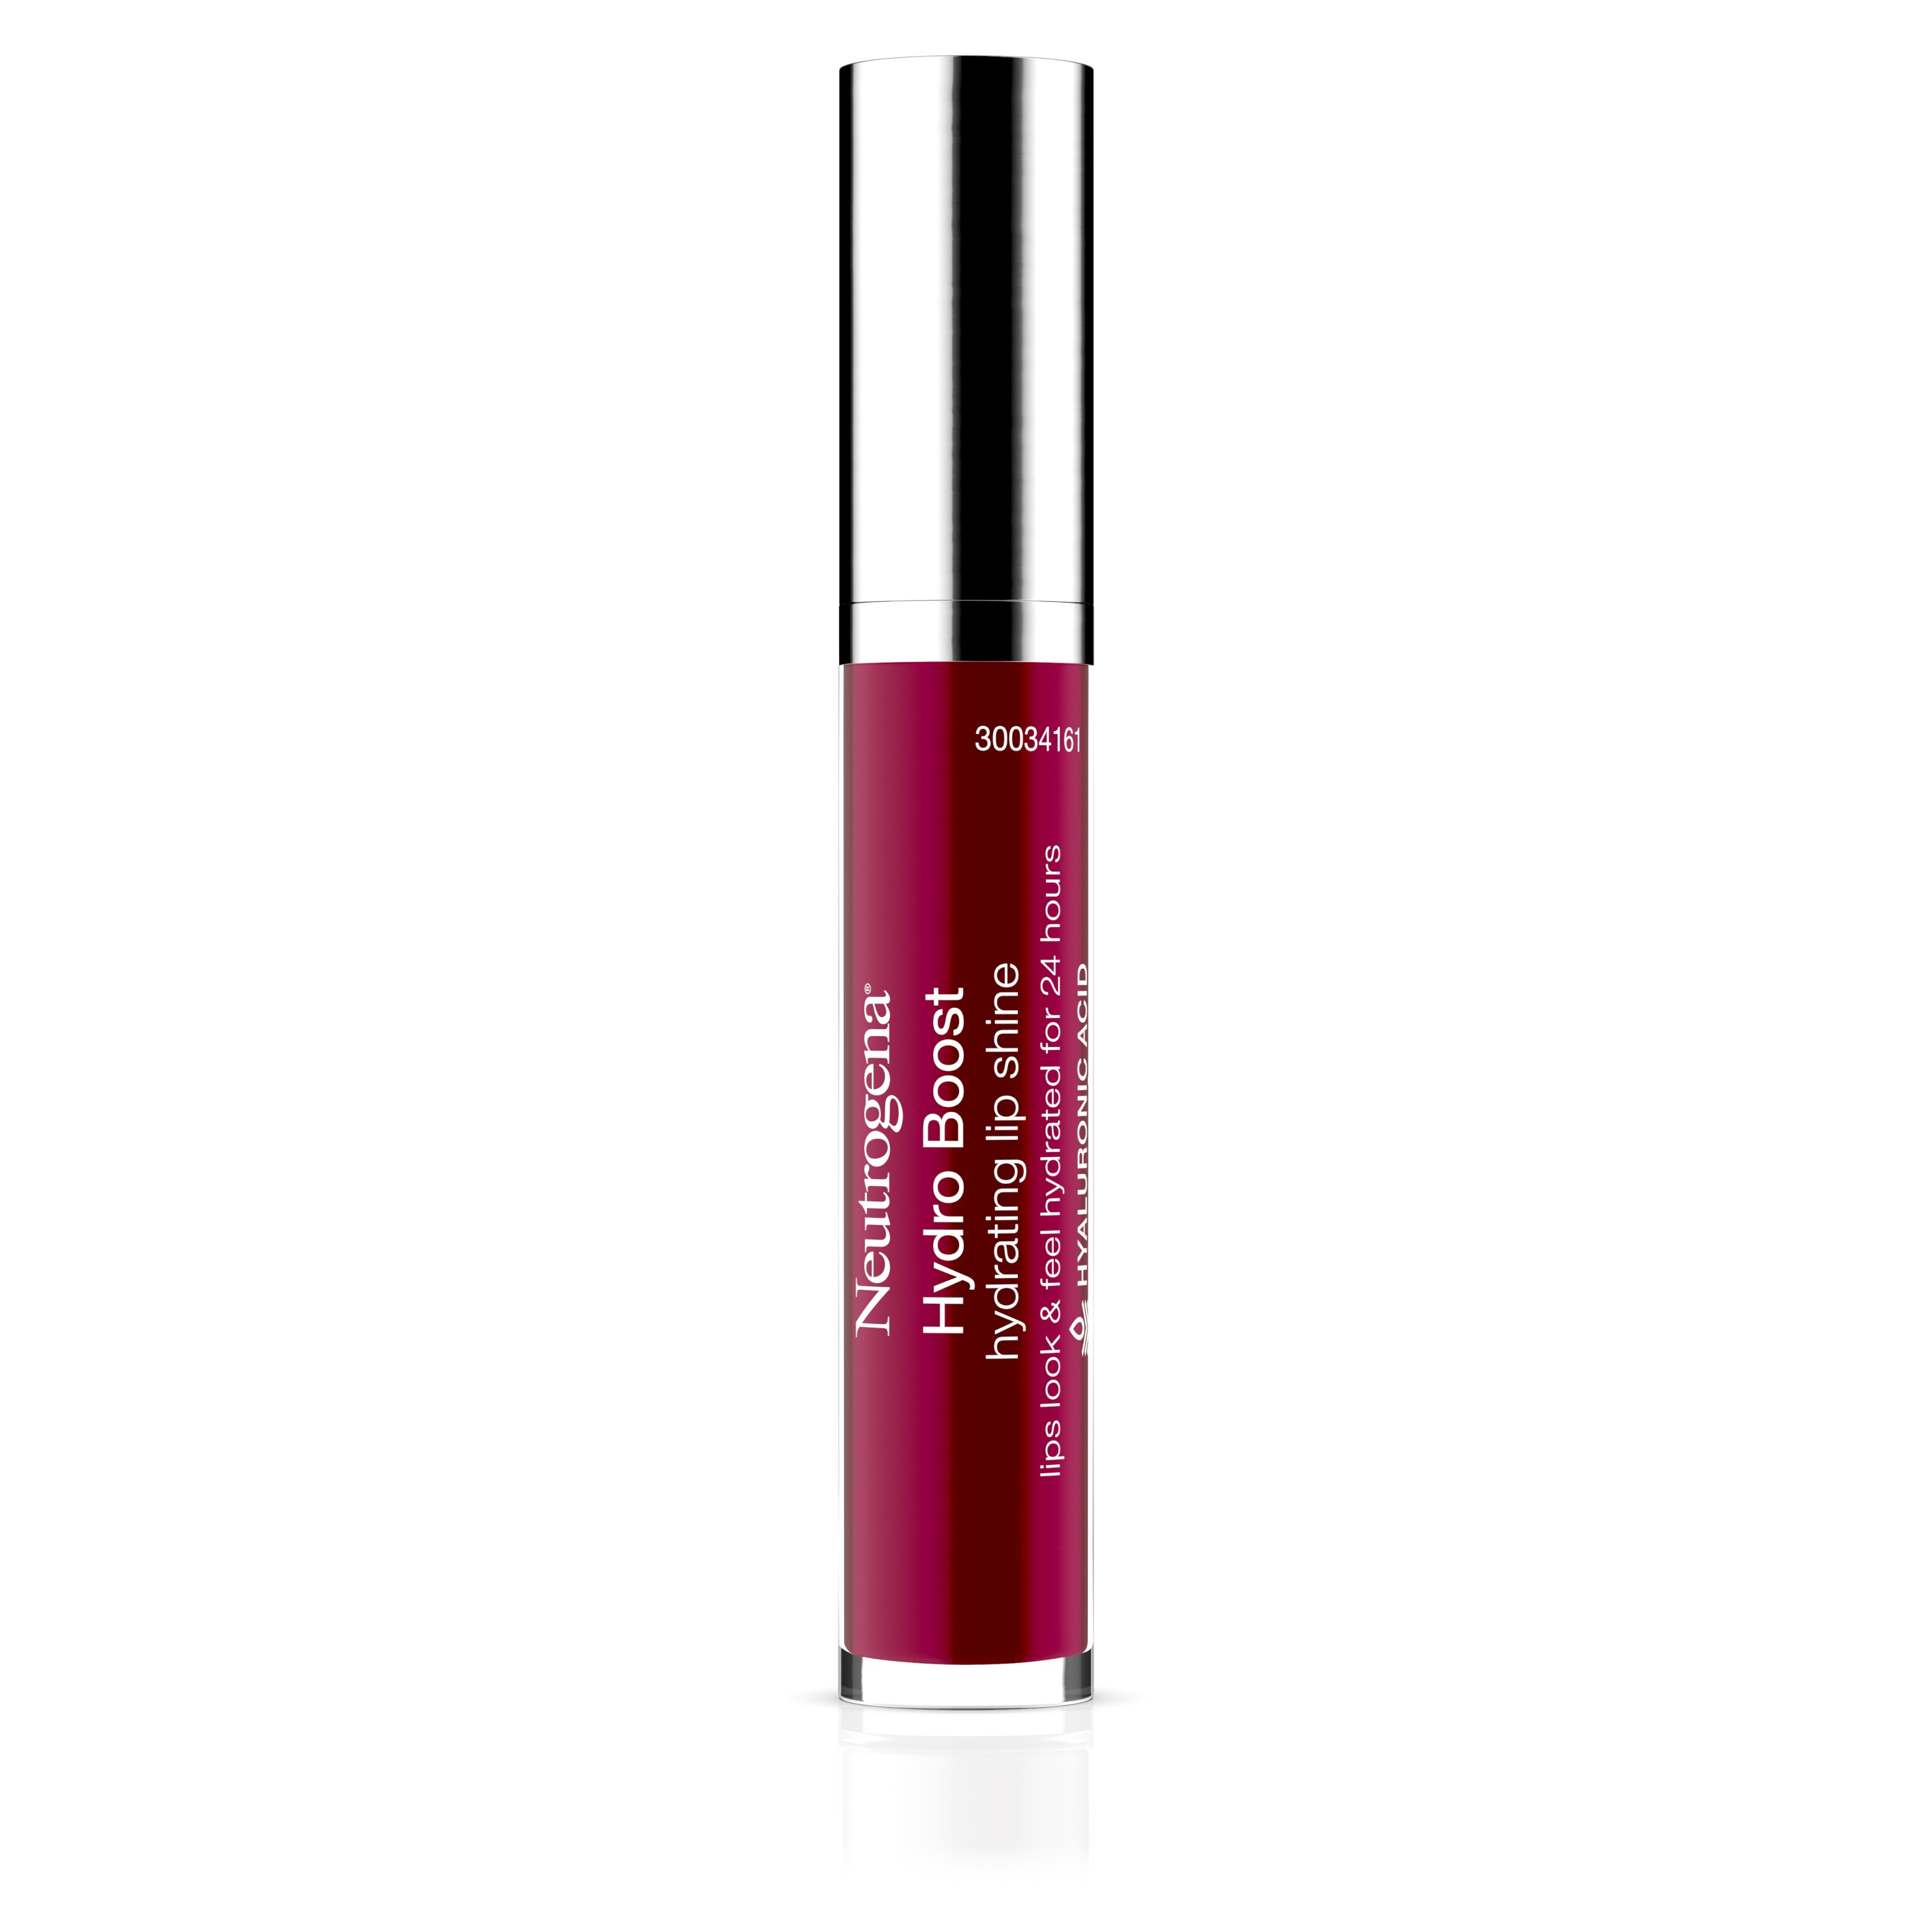 Neutrogena Hydro Boost Hydrating Lip Shine, 80 Deep Cherry Color 0.10 Oz